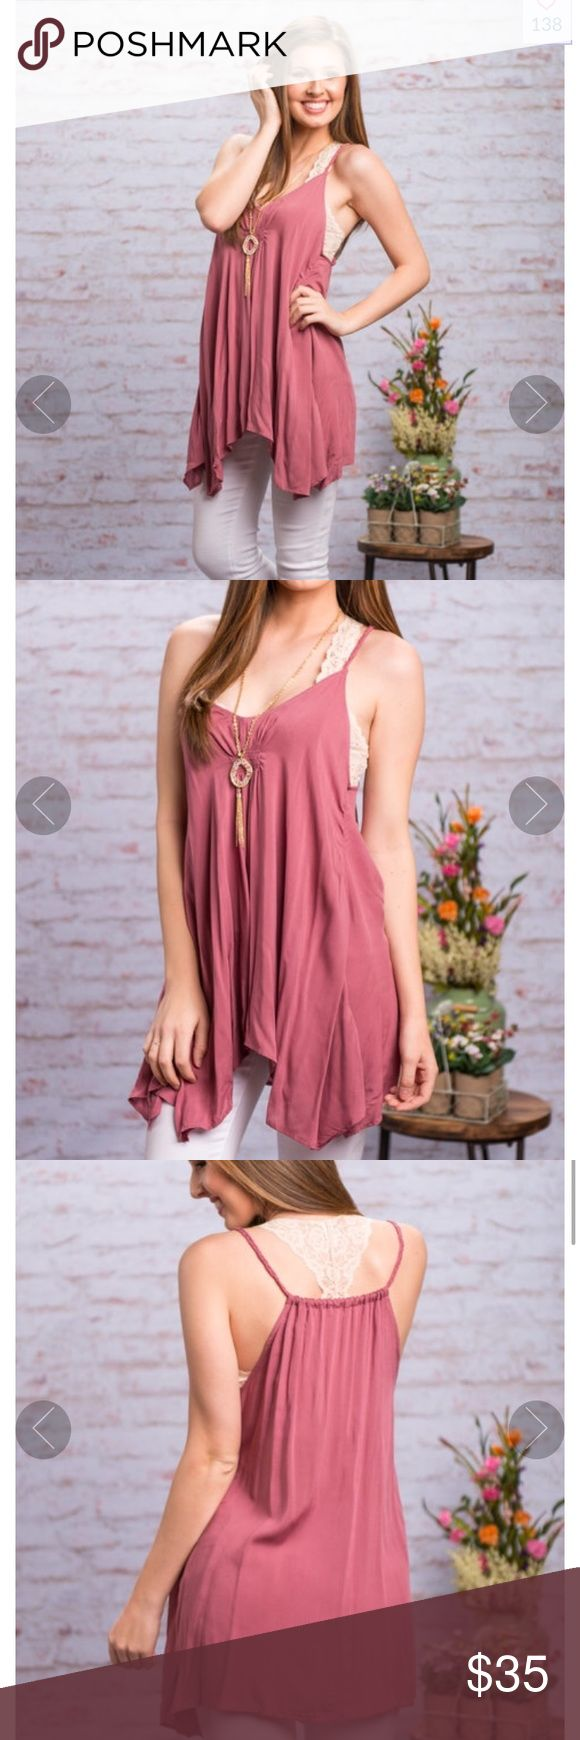 Mint Julep Boutique Top This tank is spring perfection! Beautiful Mauve color  Material has no amount of stretch. Miranda is wearing the small. Size small Mint Julep Boutique  Tops